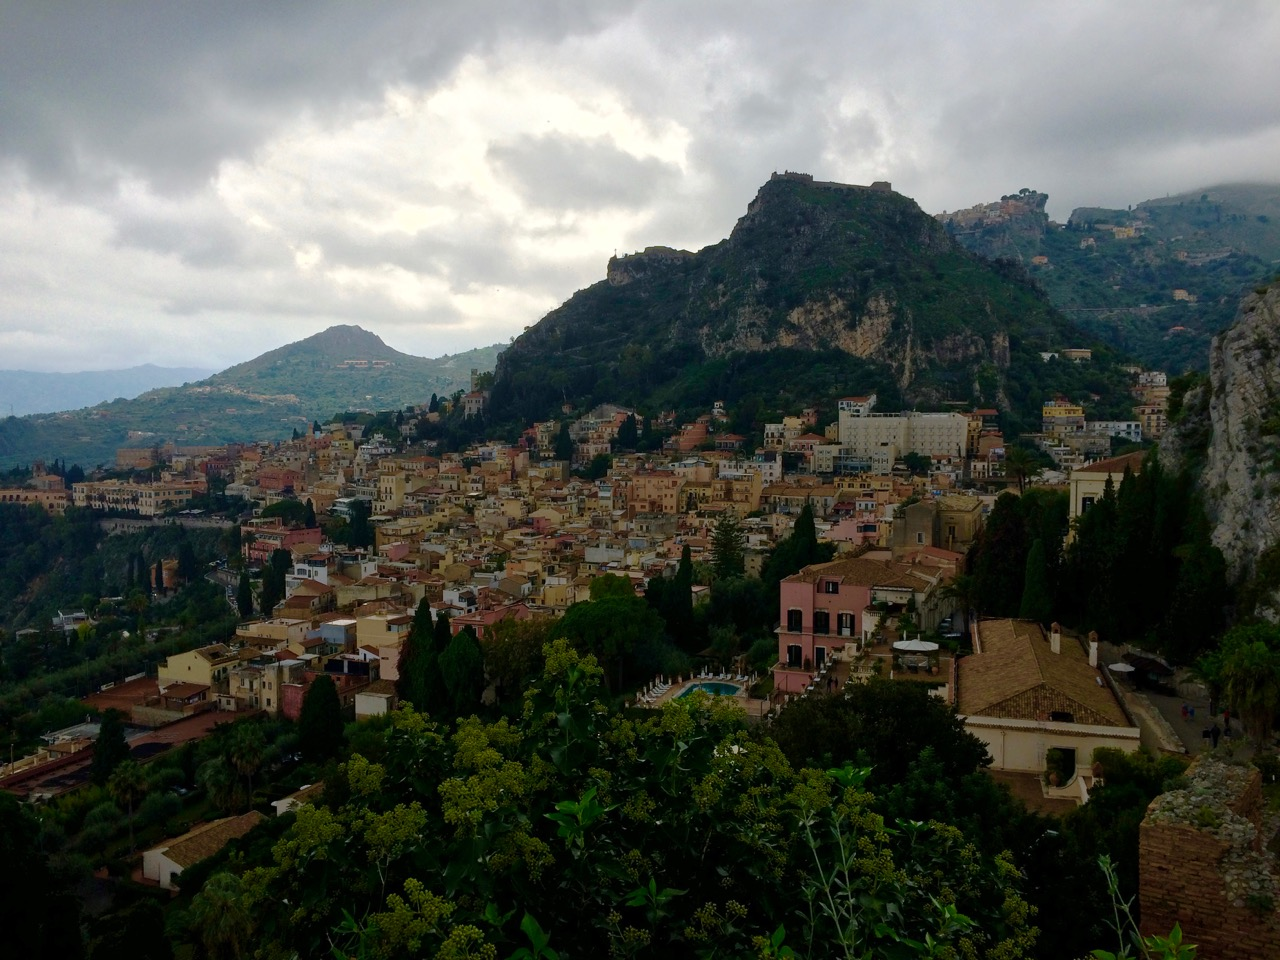 Rain over Etna morphed into menacing clouds in Taormina